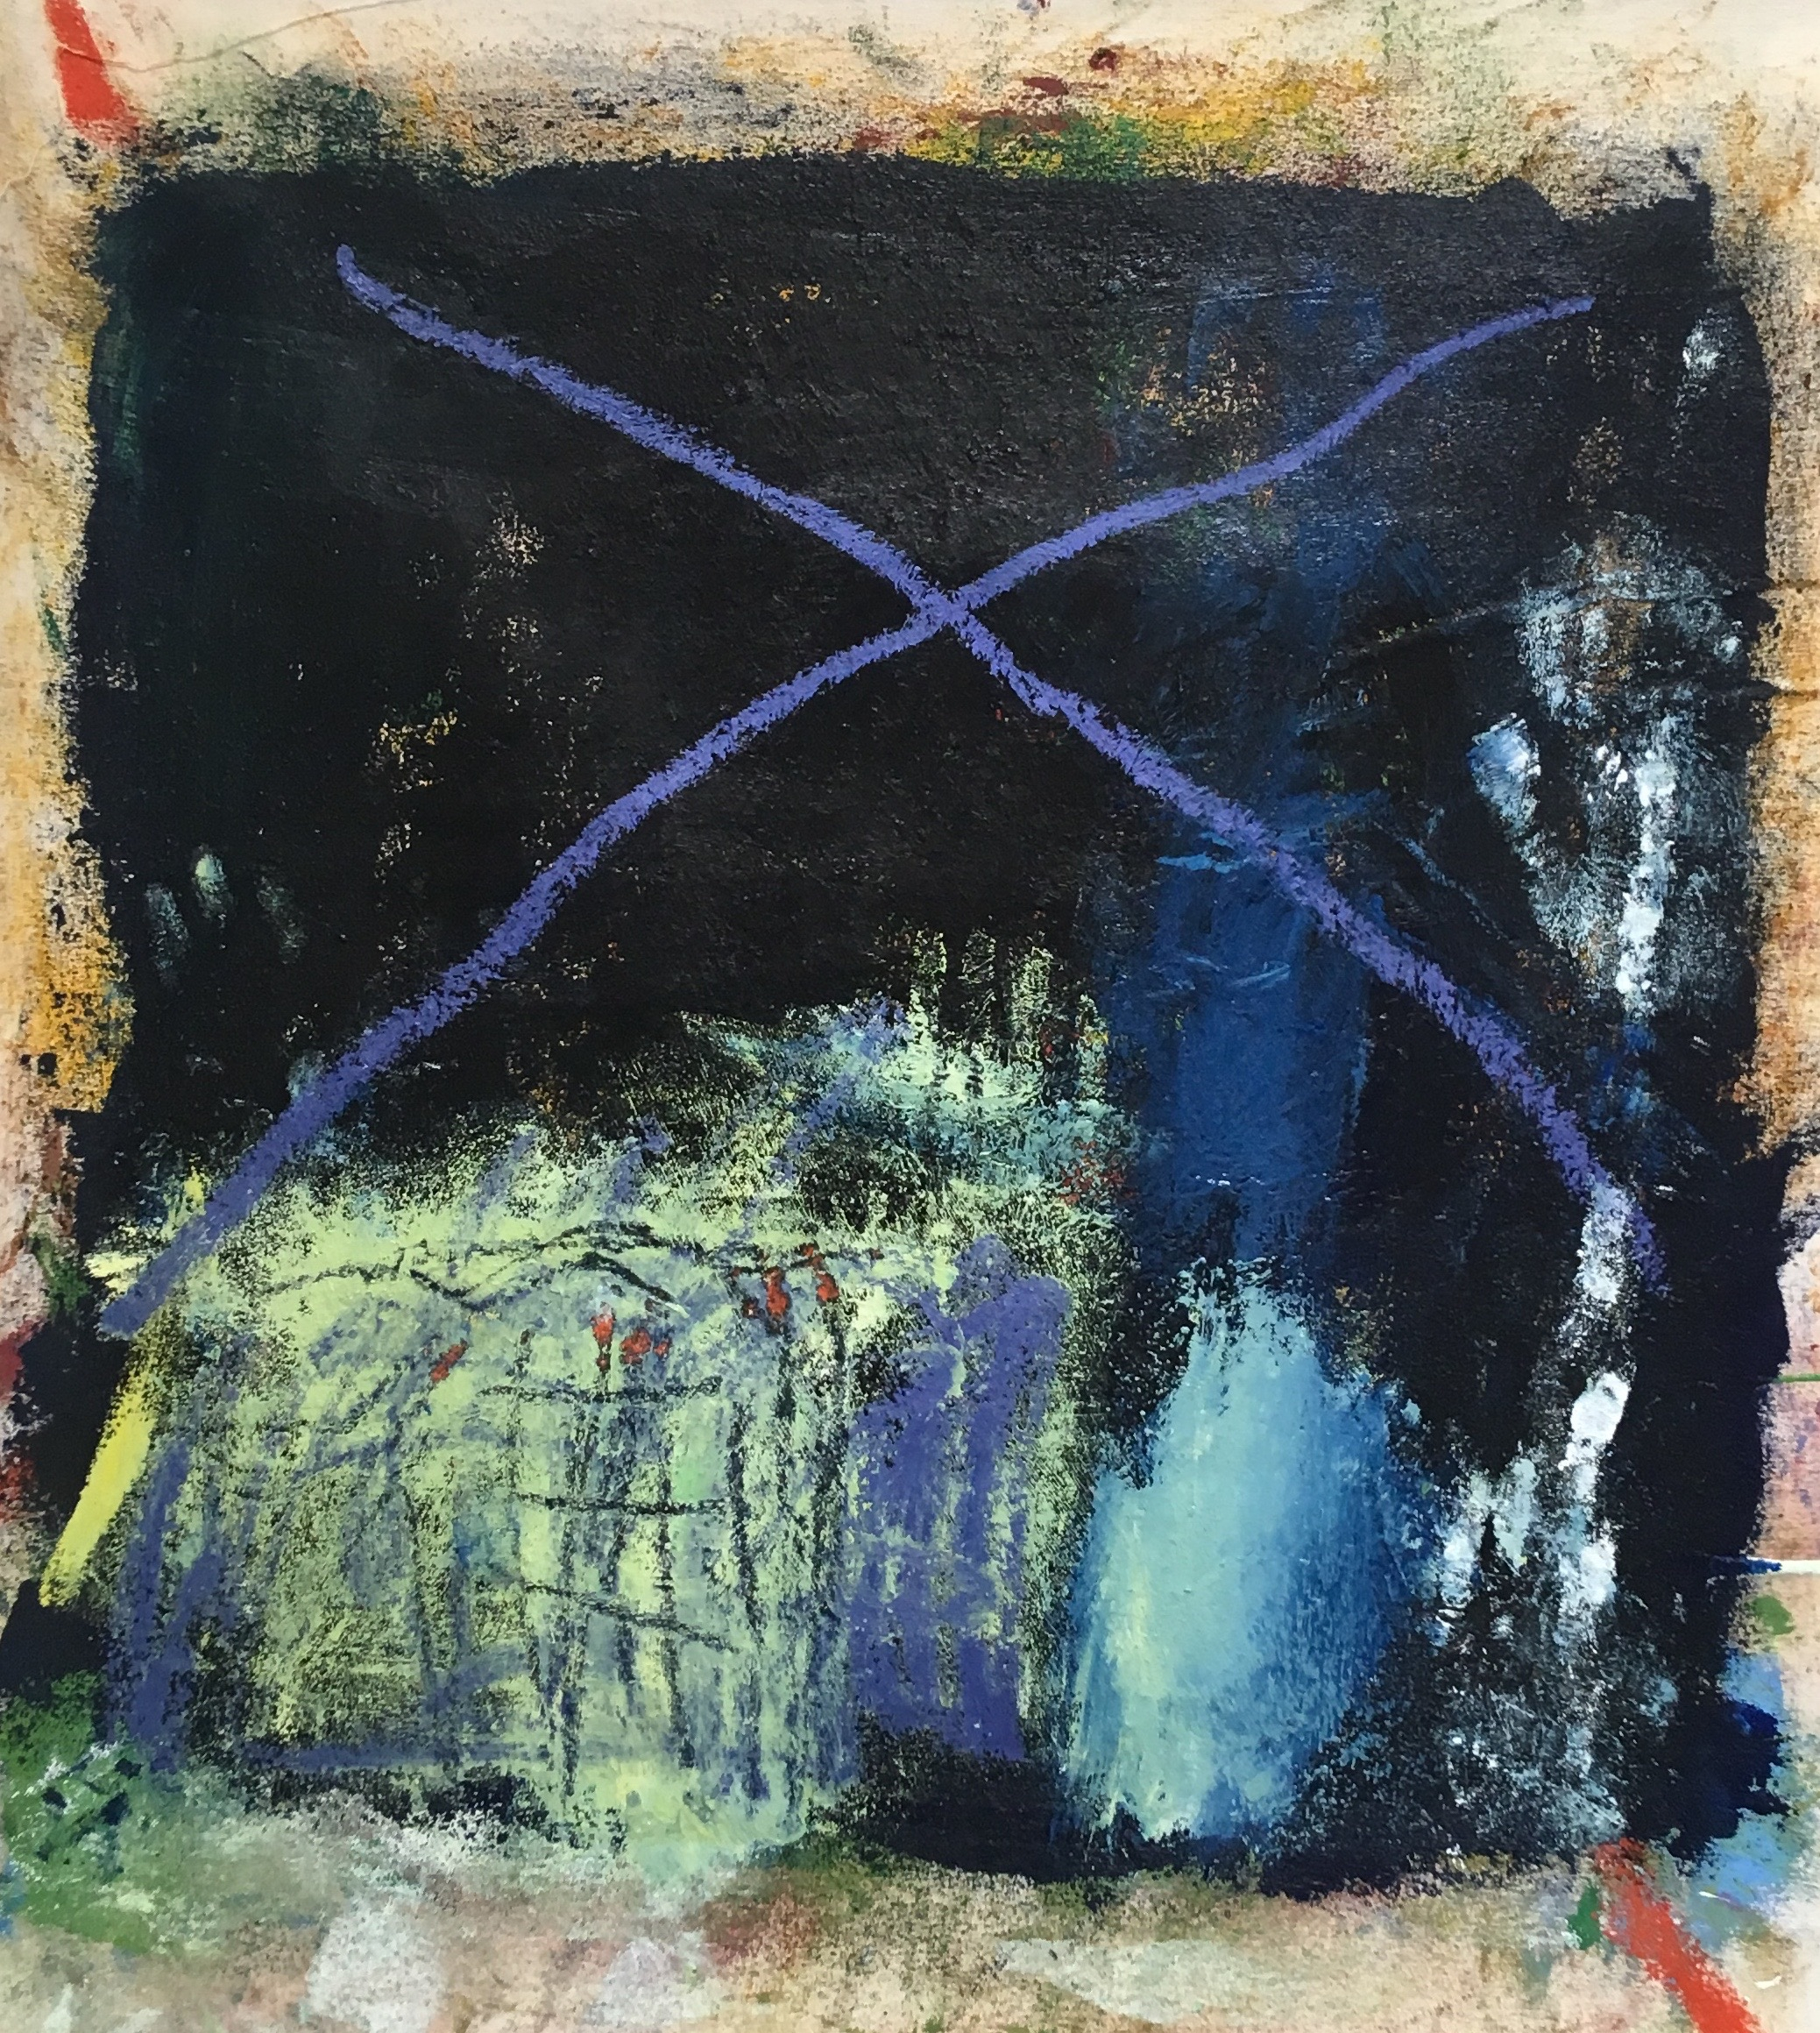 Obscure 35x35 in oil, oil stick on canvas 2019